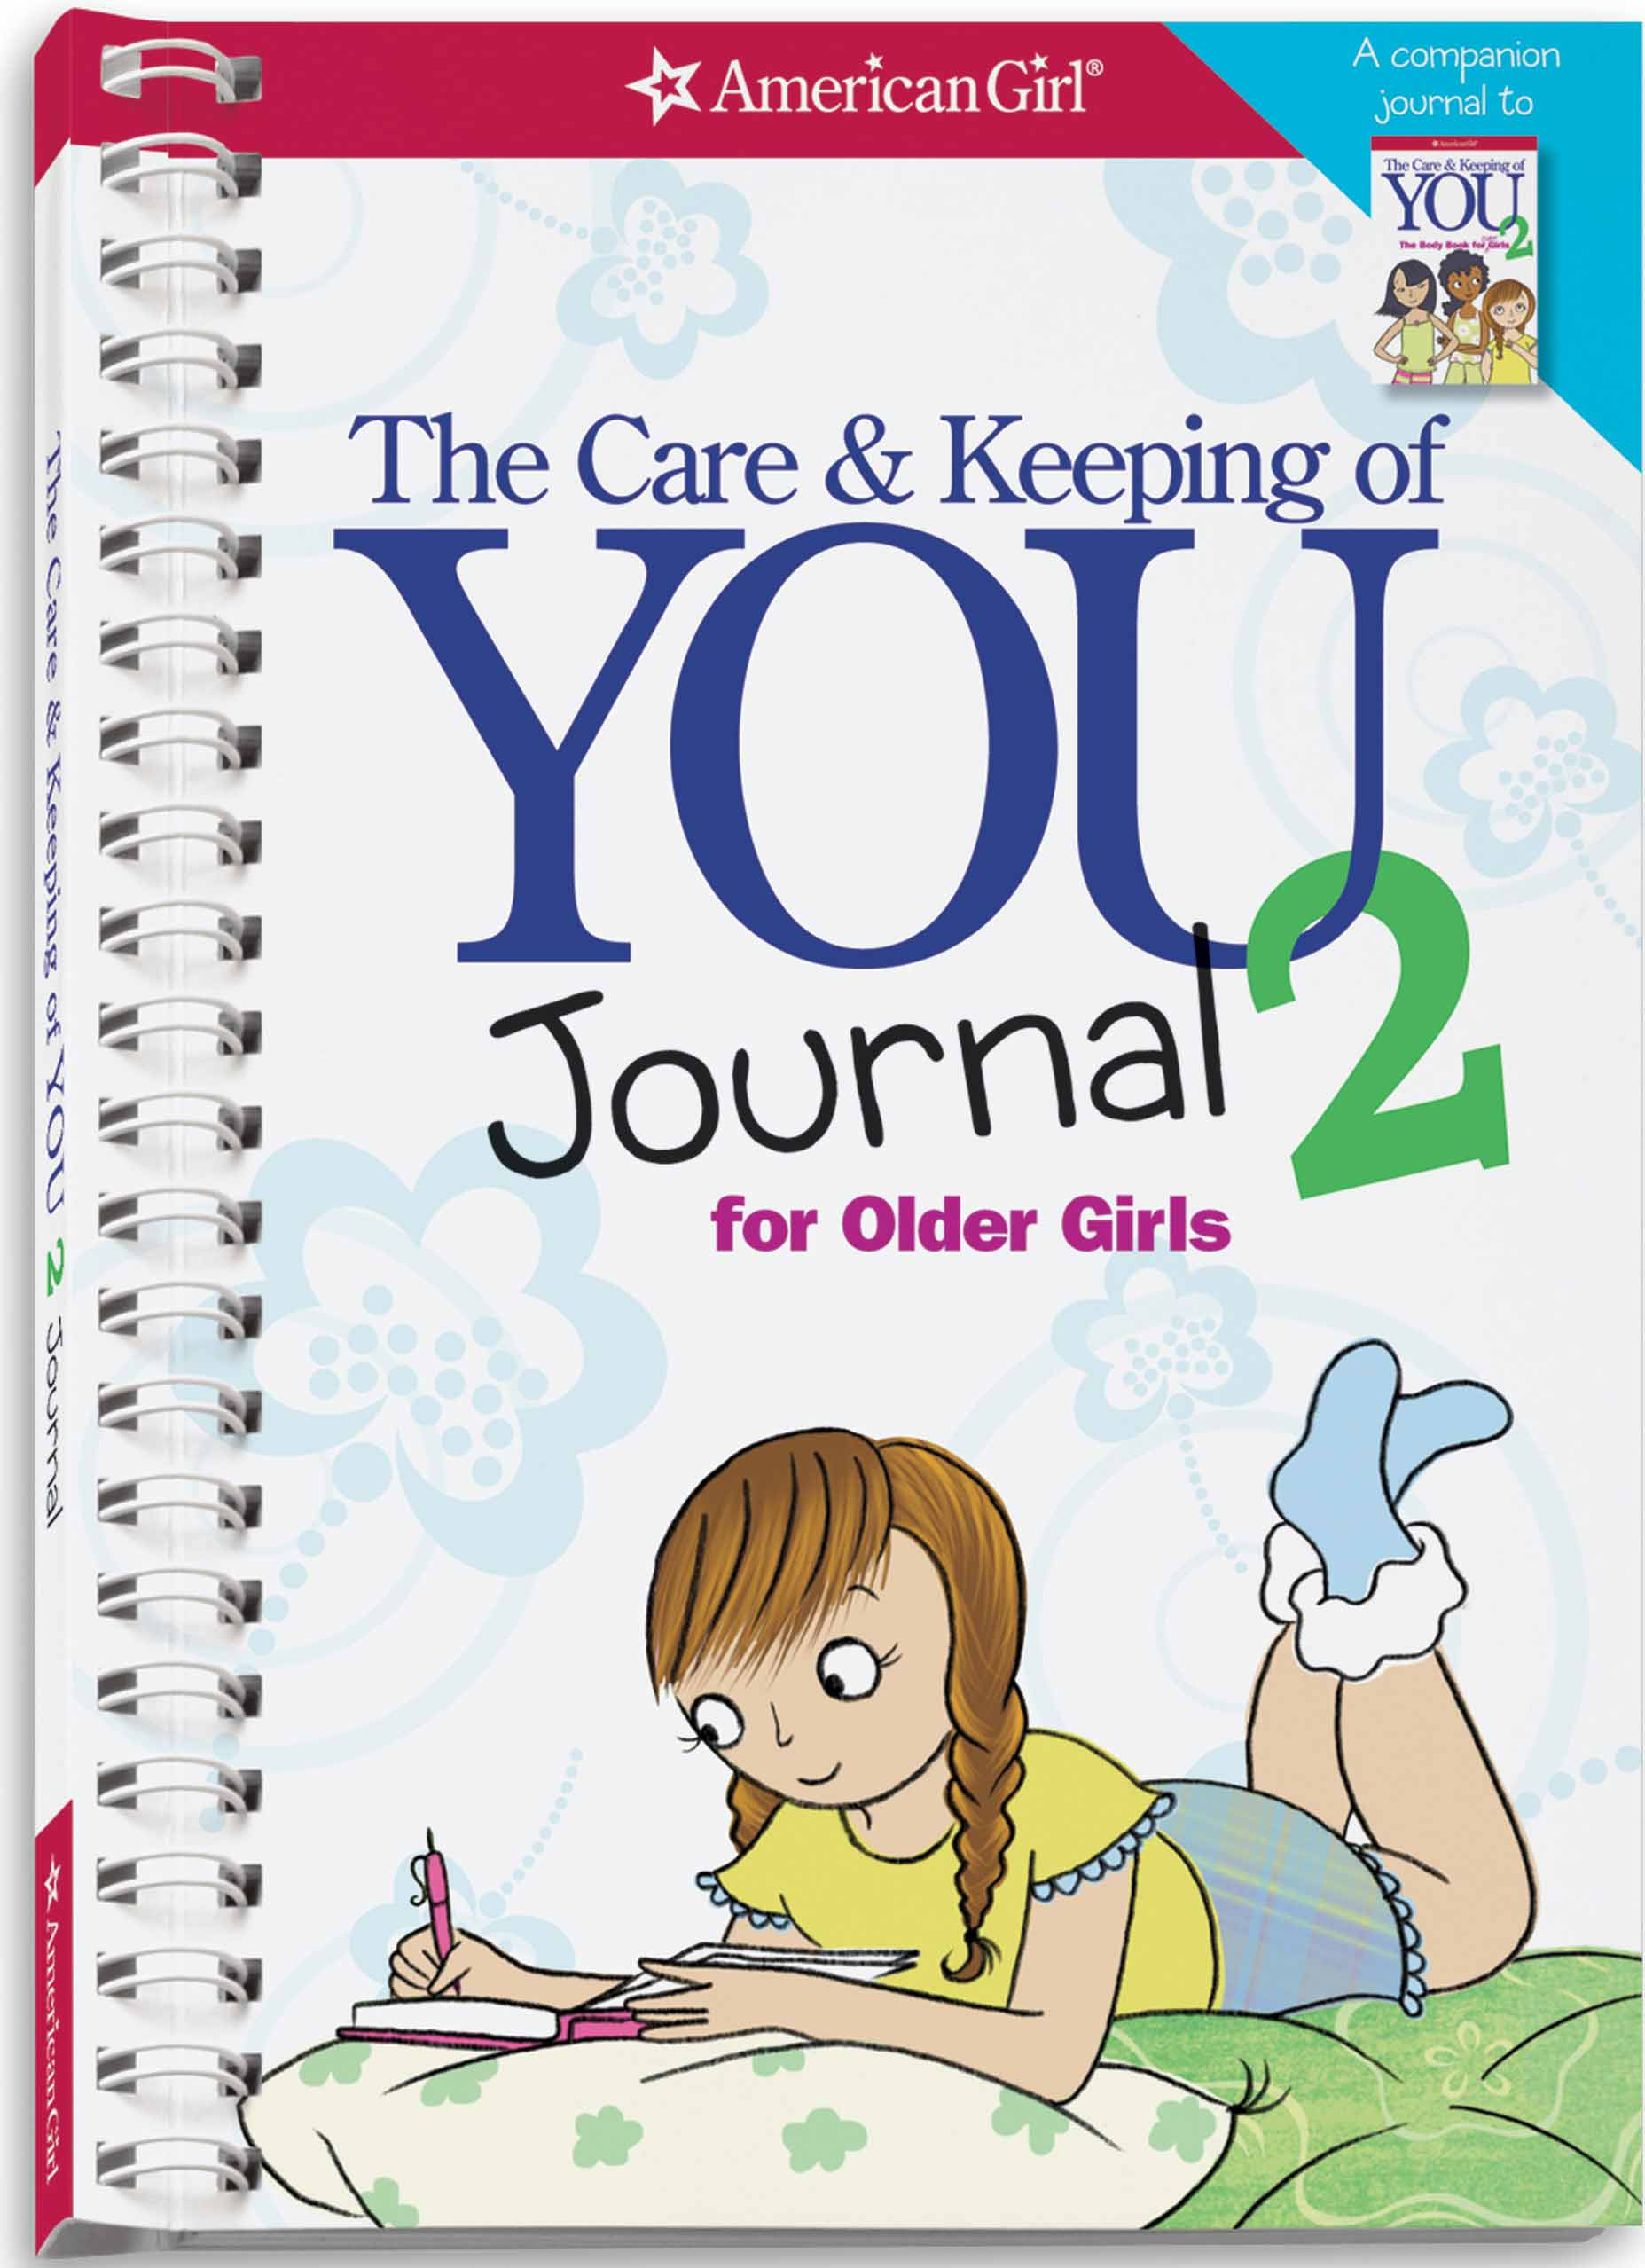 The Care & Keeping of You 2 Journal